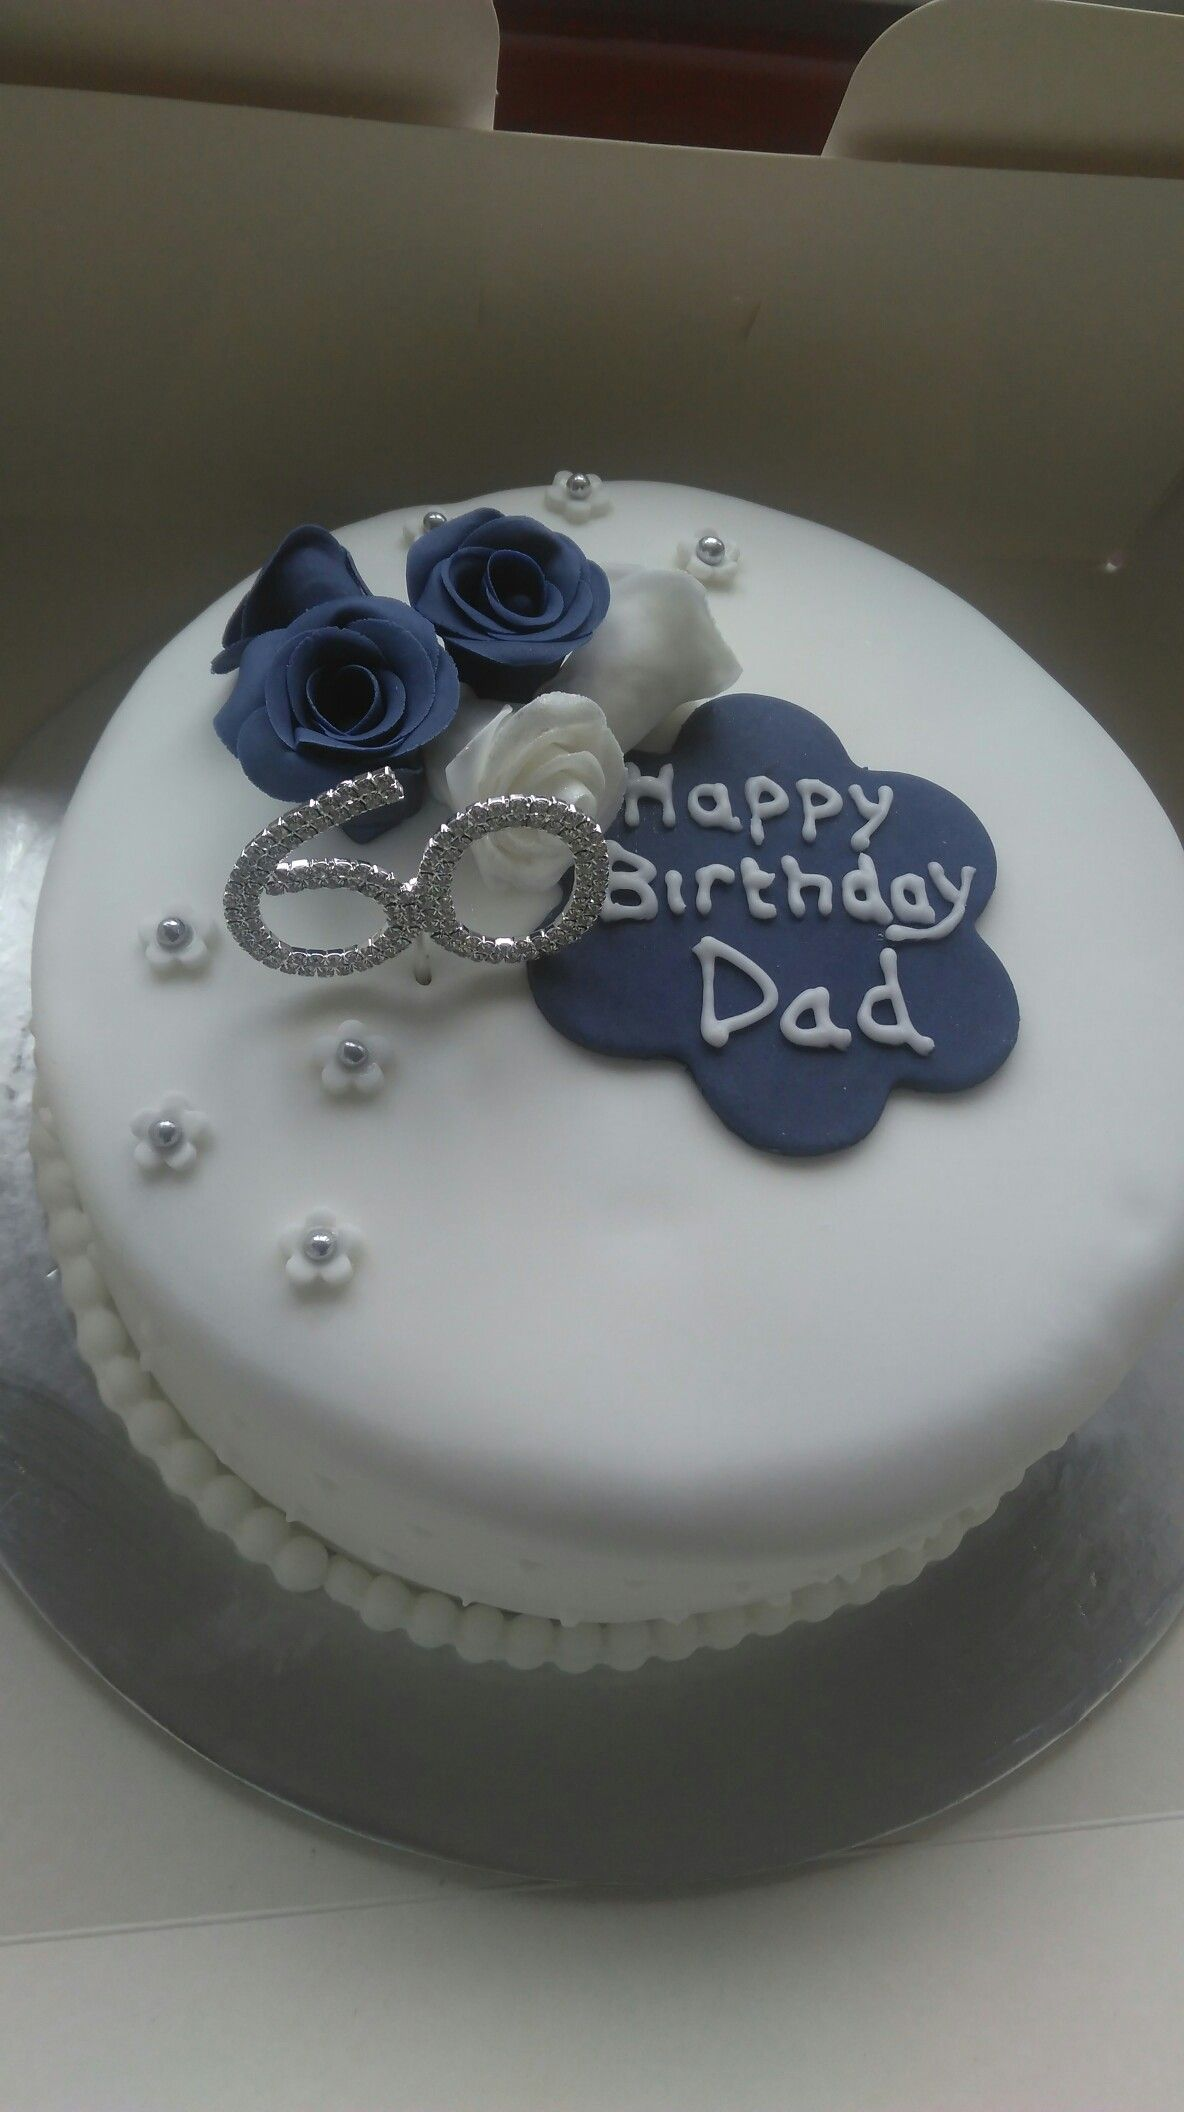 Birthday Cake Designs For Dad : Floral 60th birthday cake for my dad. My home bakes ...